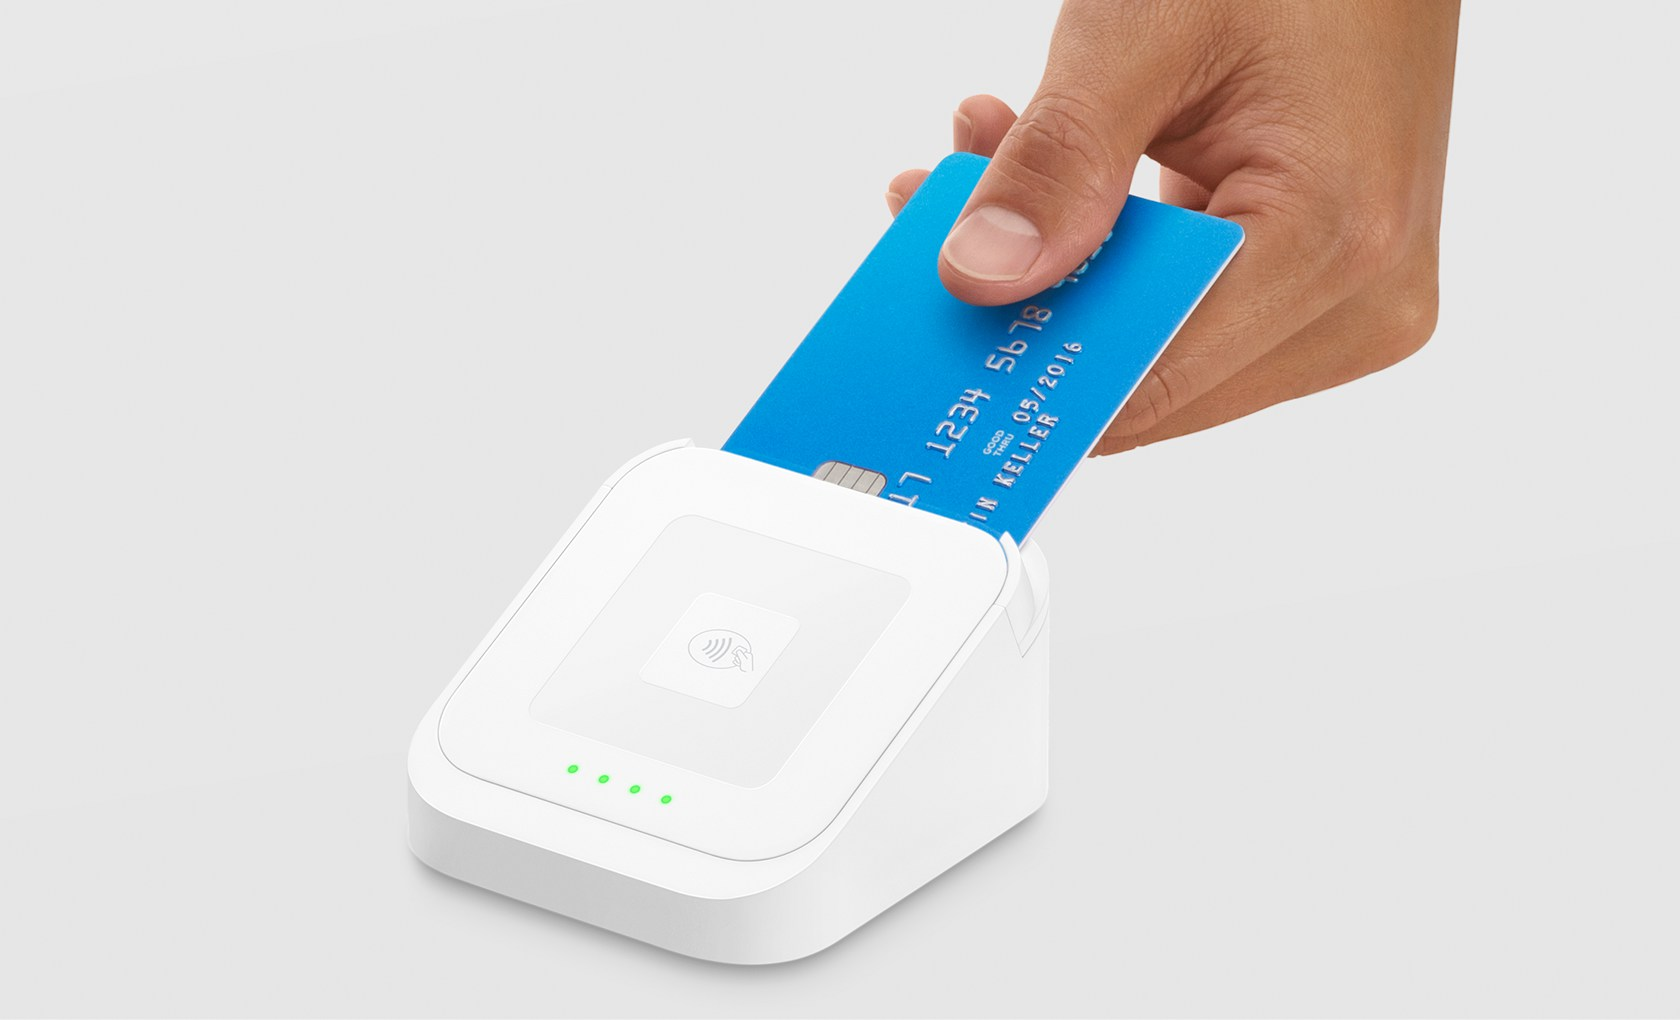 Photo of a hand dipping a chip card into the Square Reader